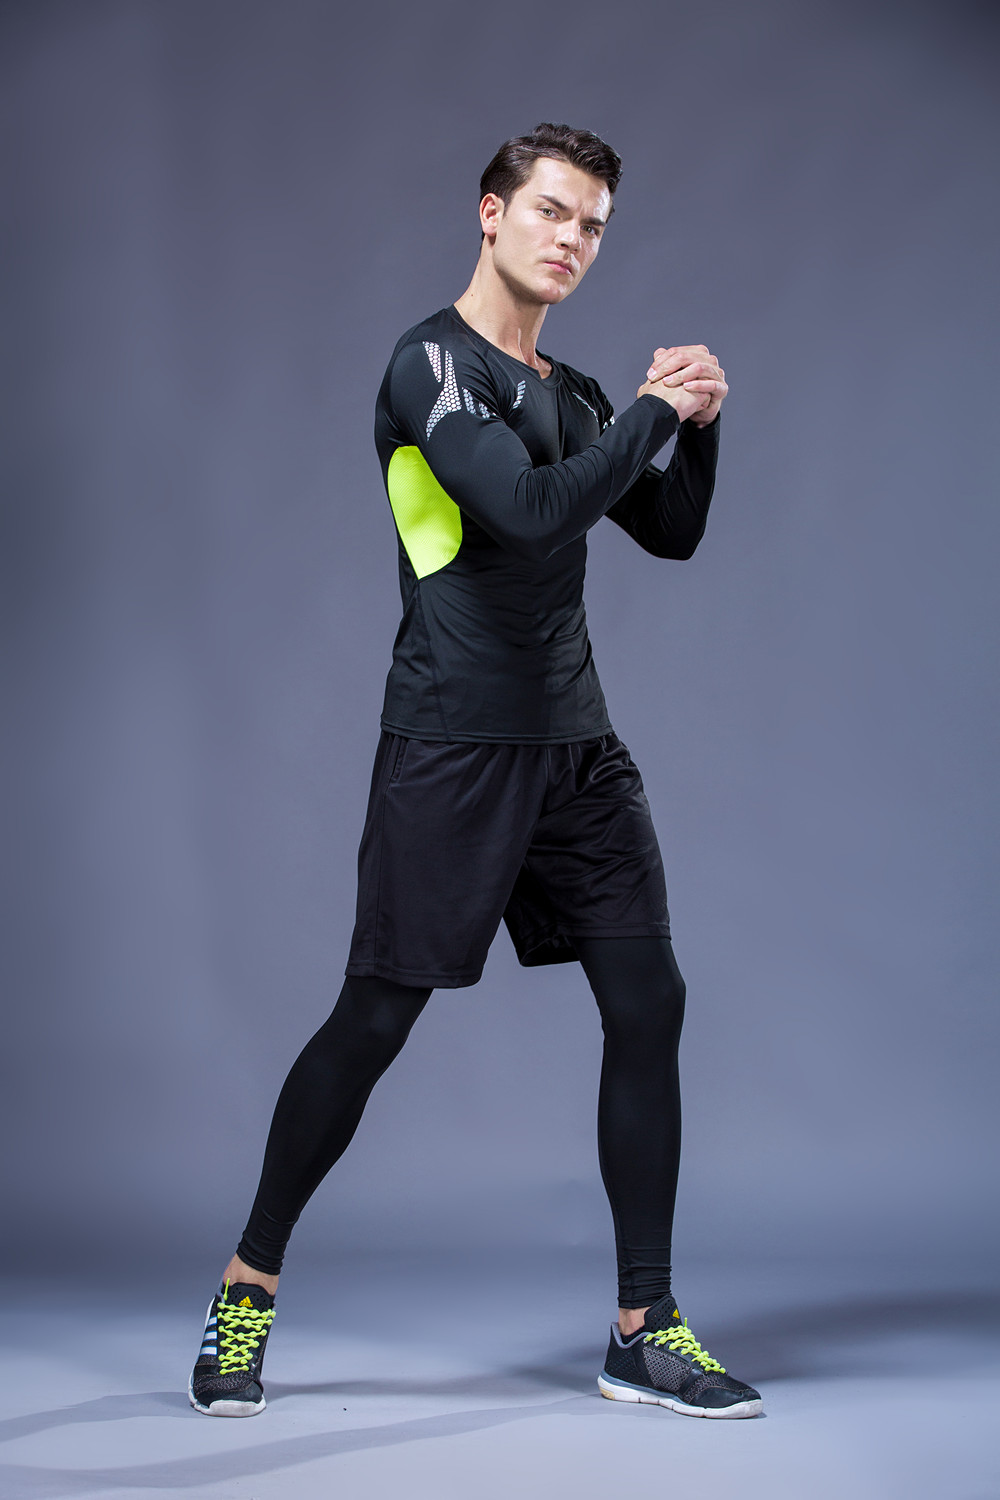 Foto from the left on the men 5 pcs compressions clothes for gym. Men's 5 pcs compression tracksuit sports